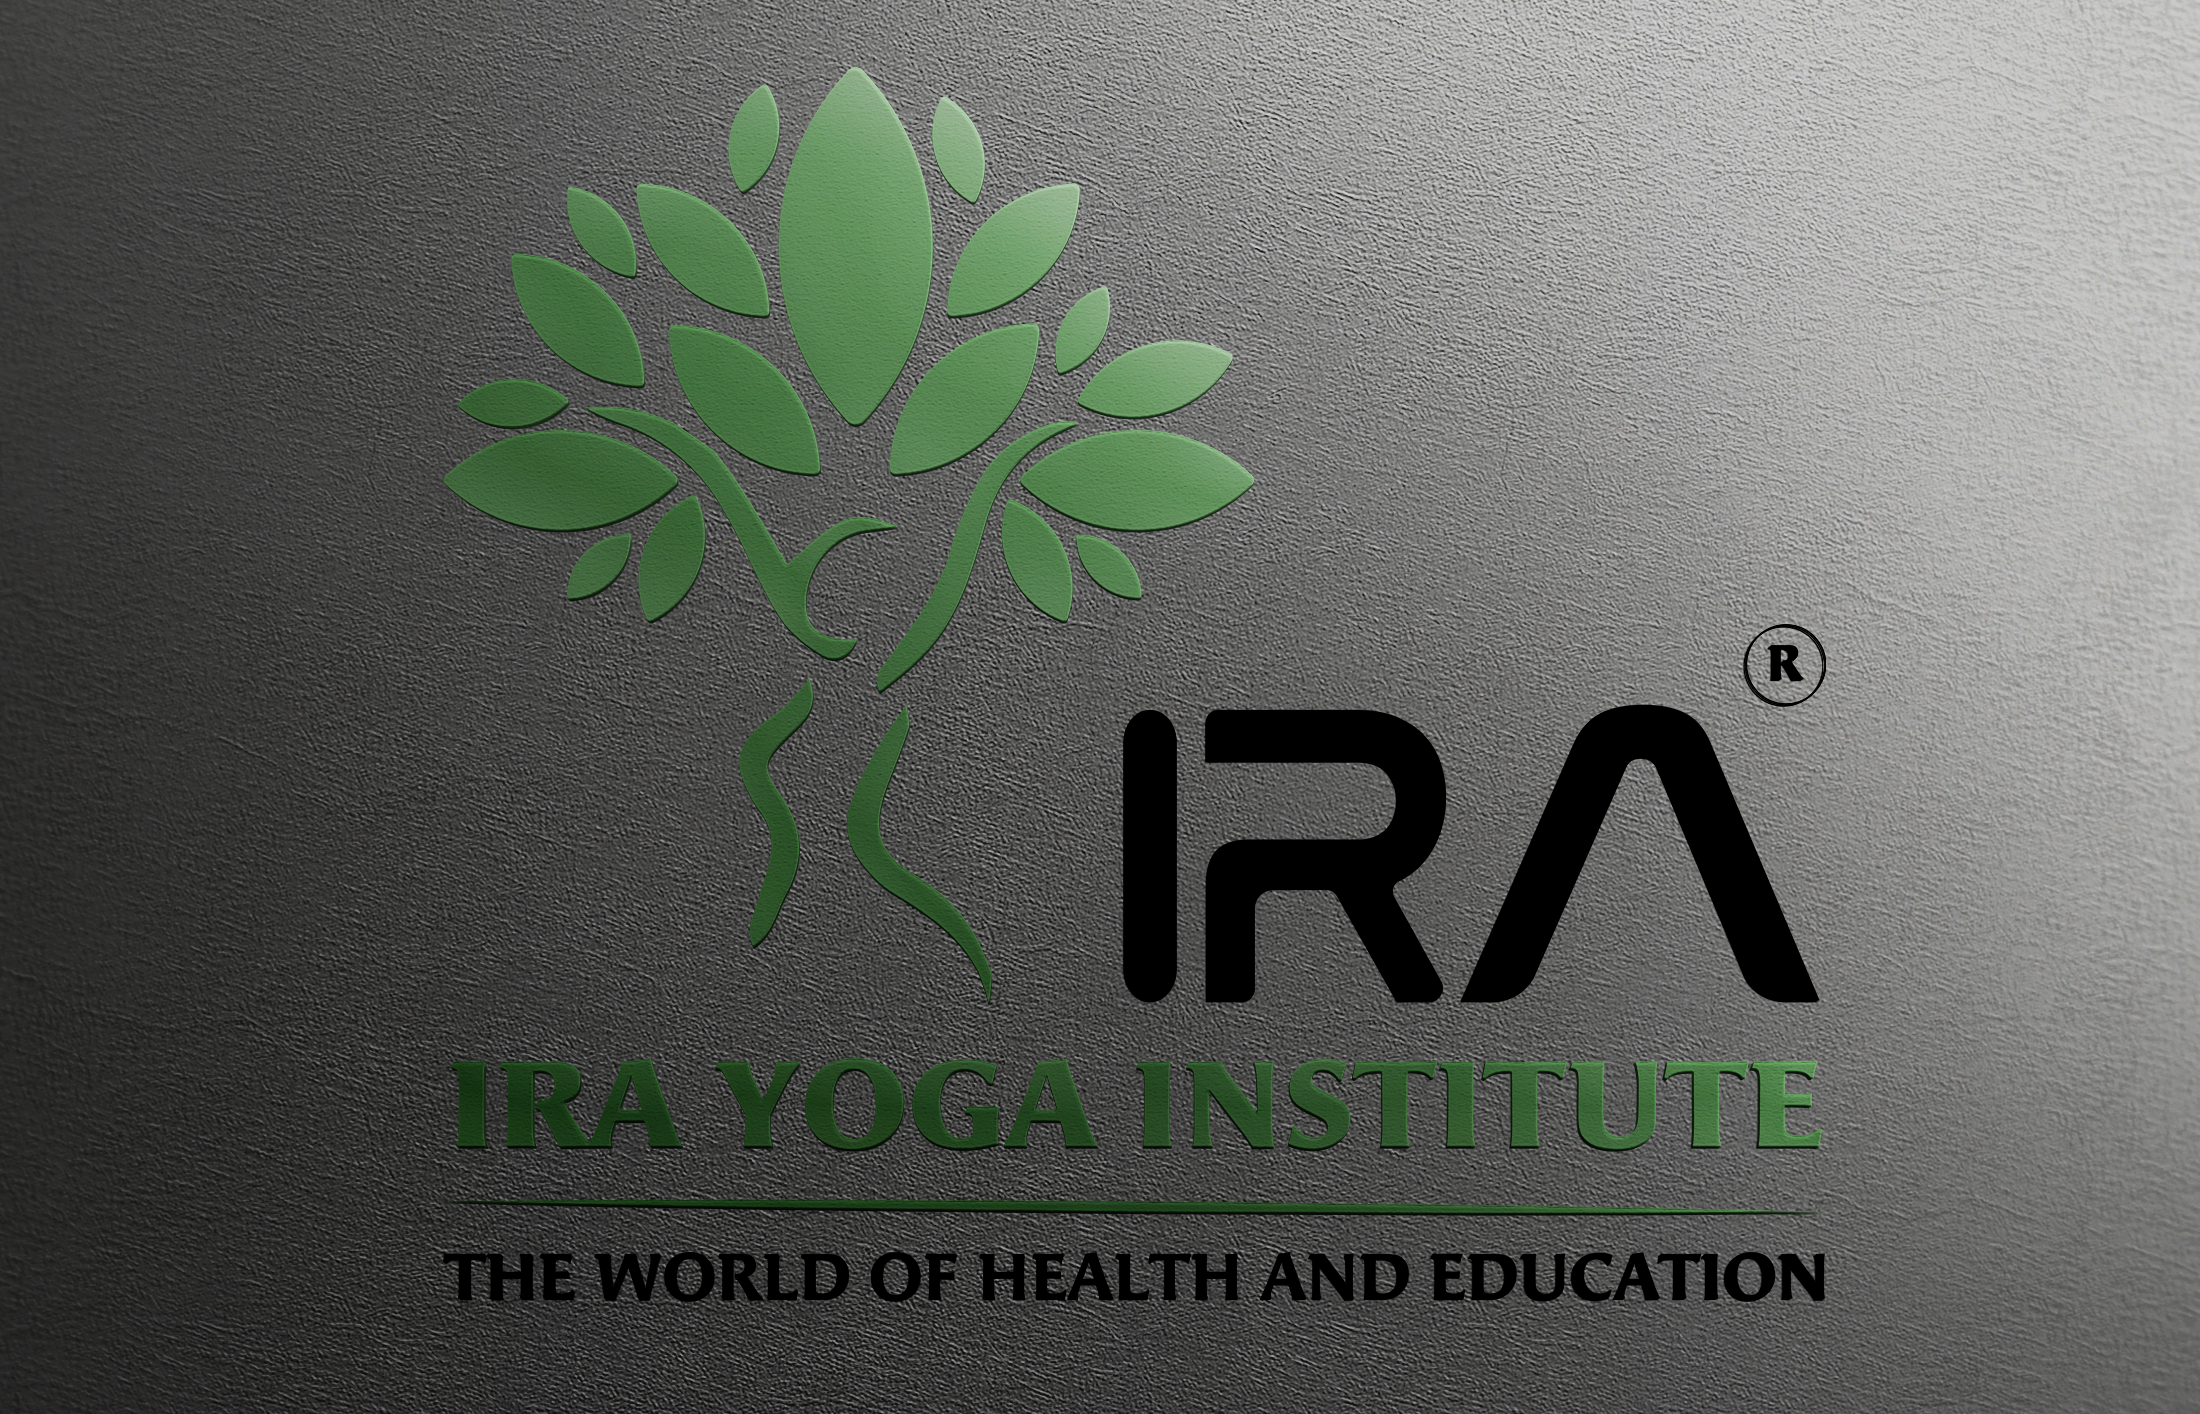 IRA Yoga Institute